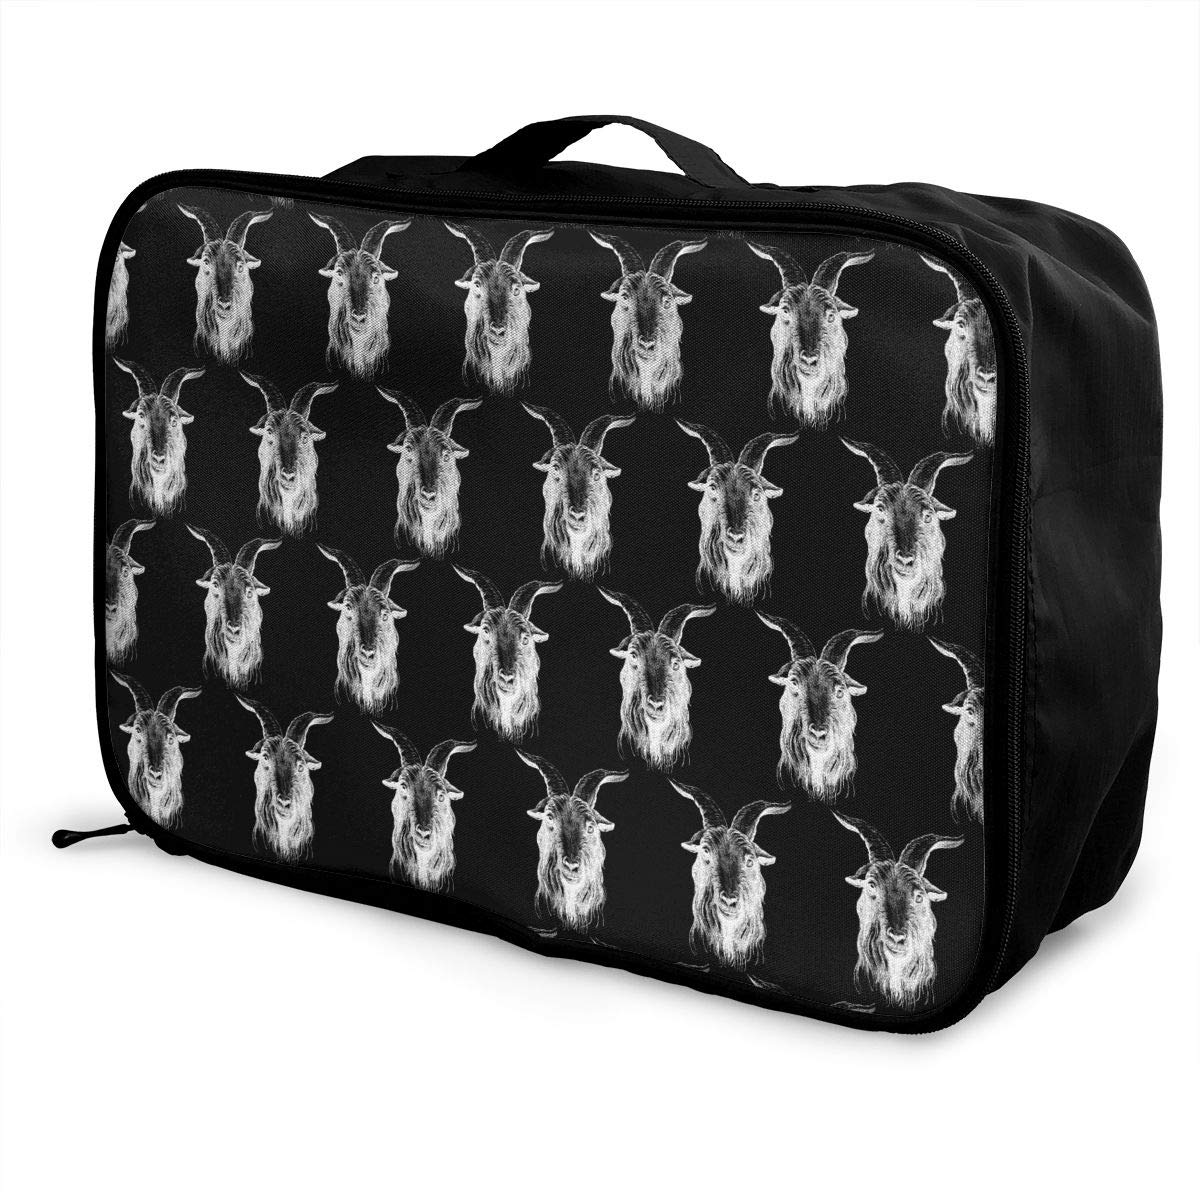 Travel Duffel Bag Waterproof Fashion Lightweight Large Capacity Portable Luggage Bag Goat Head Pattern Black